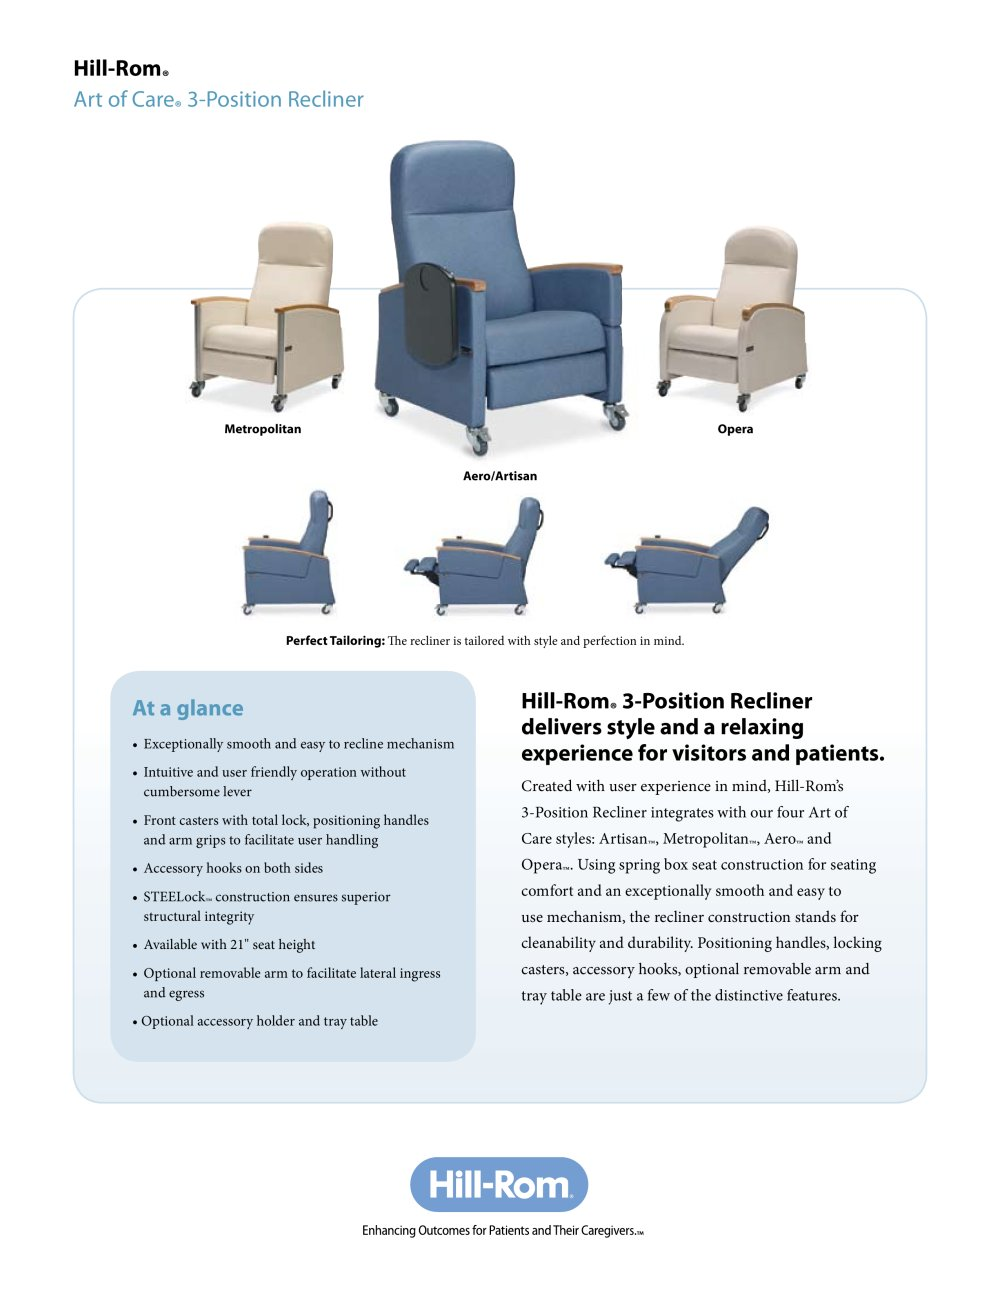 Art of Care ® 3-Position Recliner - 1 / 2 Pages  sc 1 st  Catalogues Medicalexpo & Art of Care ® 3-Position Recliner - Hill-Rom - PDF Catalogue ... islam-shia.org